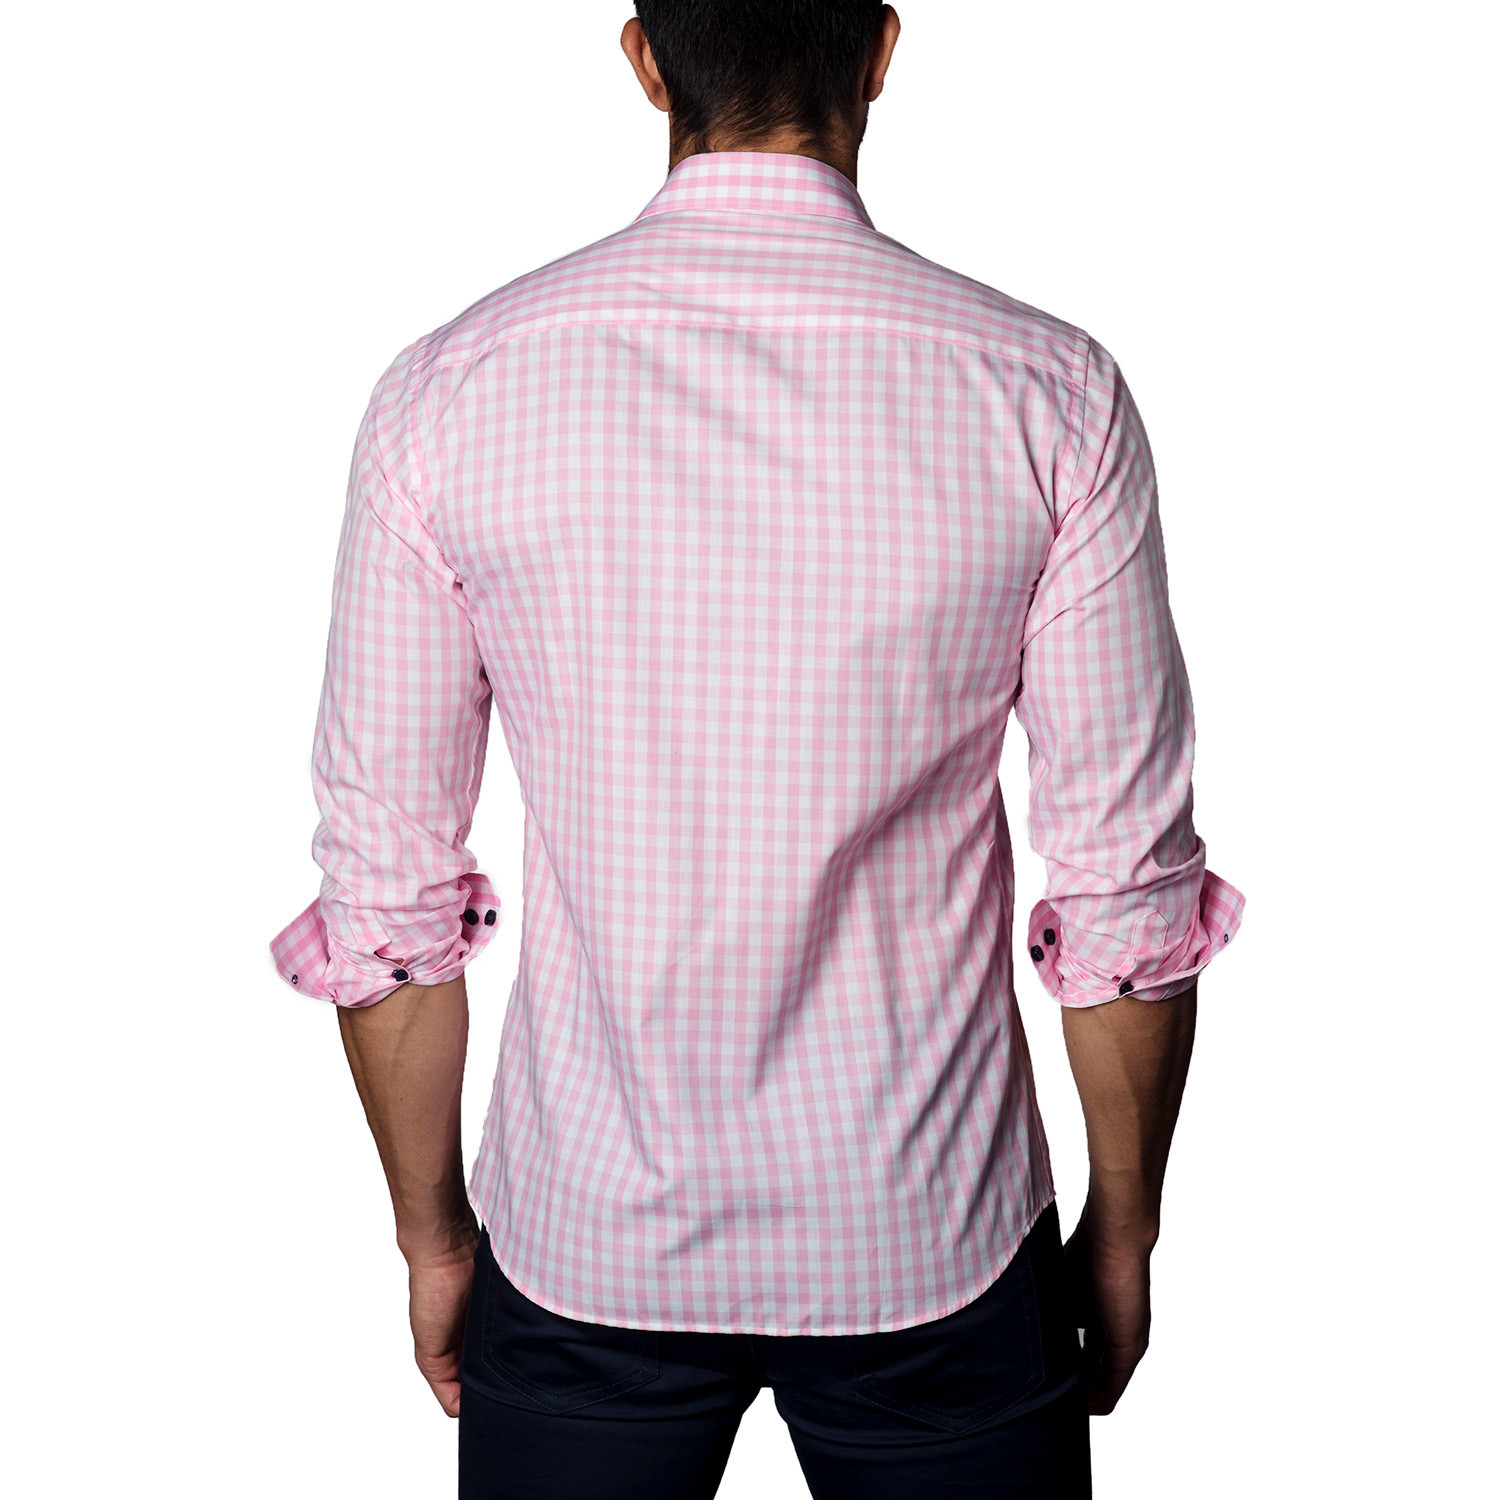 Find great deals on eBay for pink plaid girls shirt. Shop with confidence.